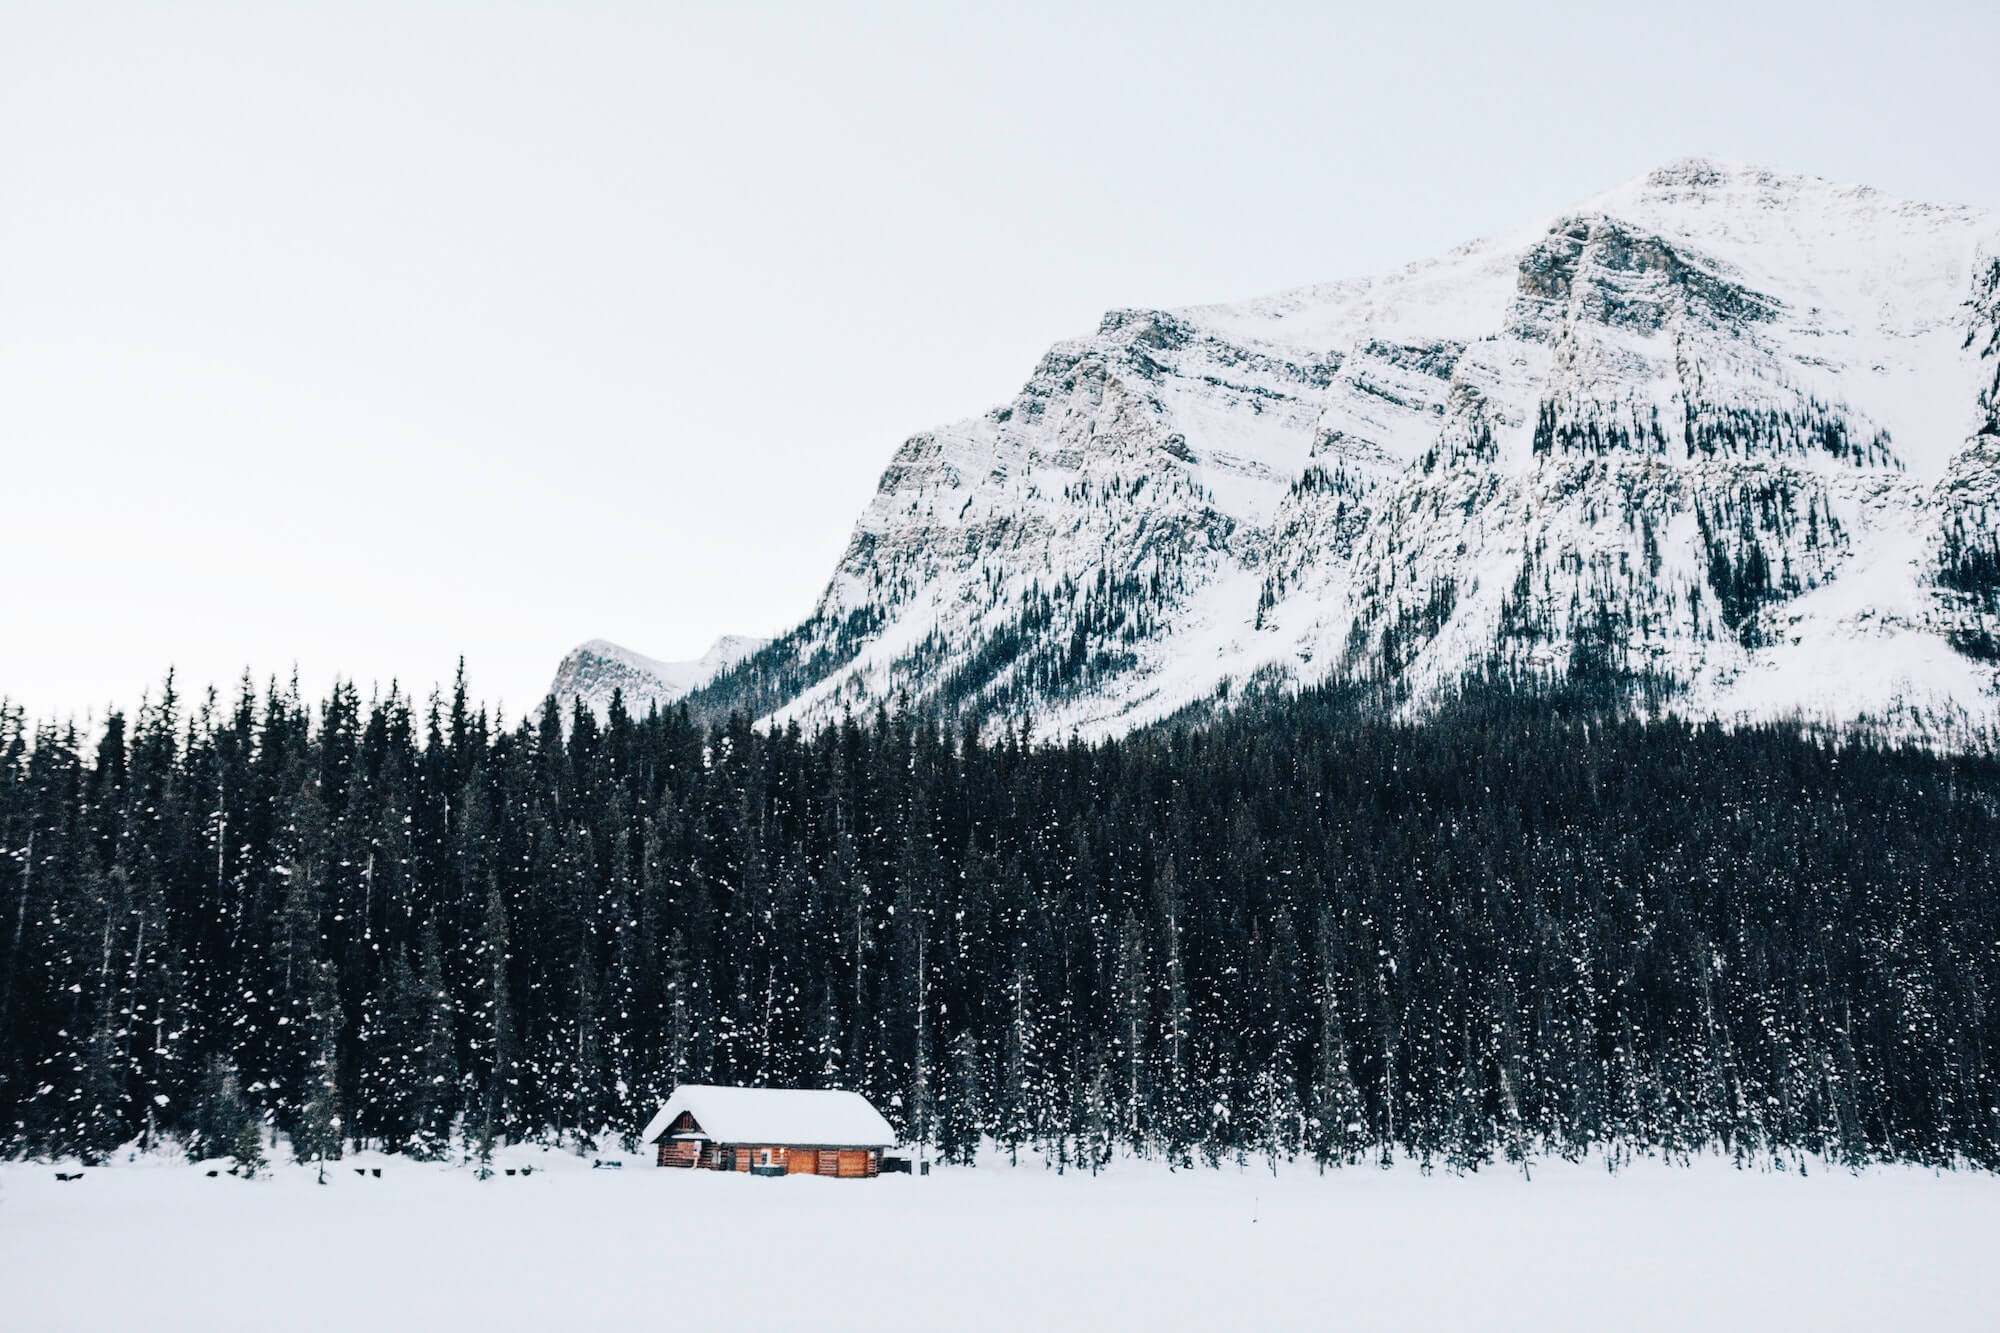 Solo cabin with snowy mountain behind